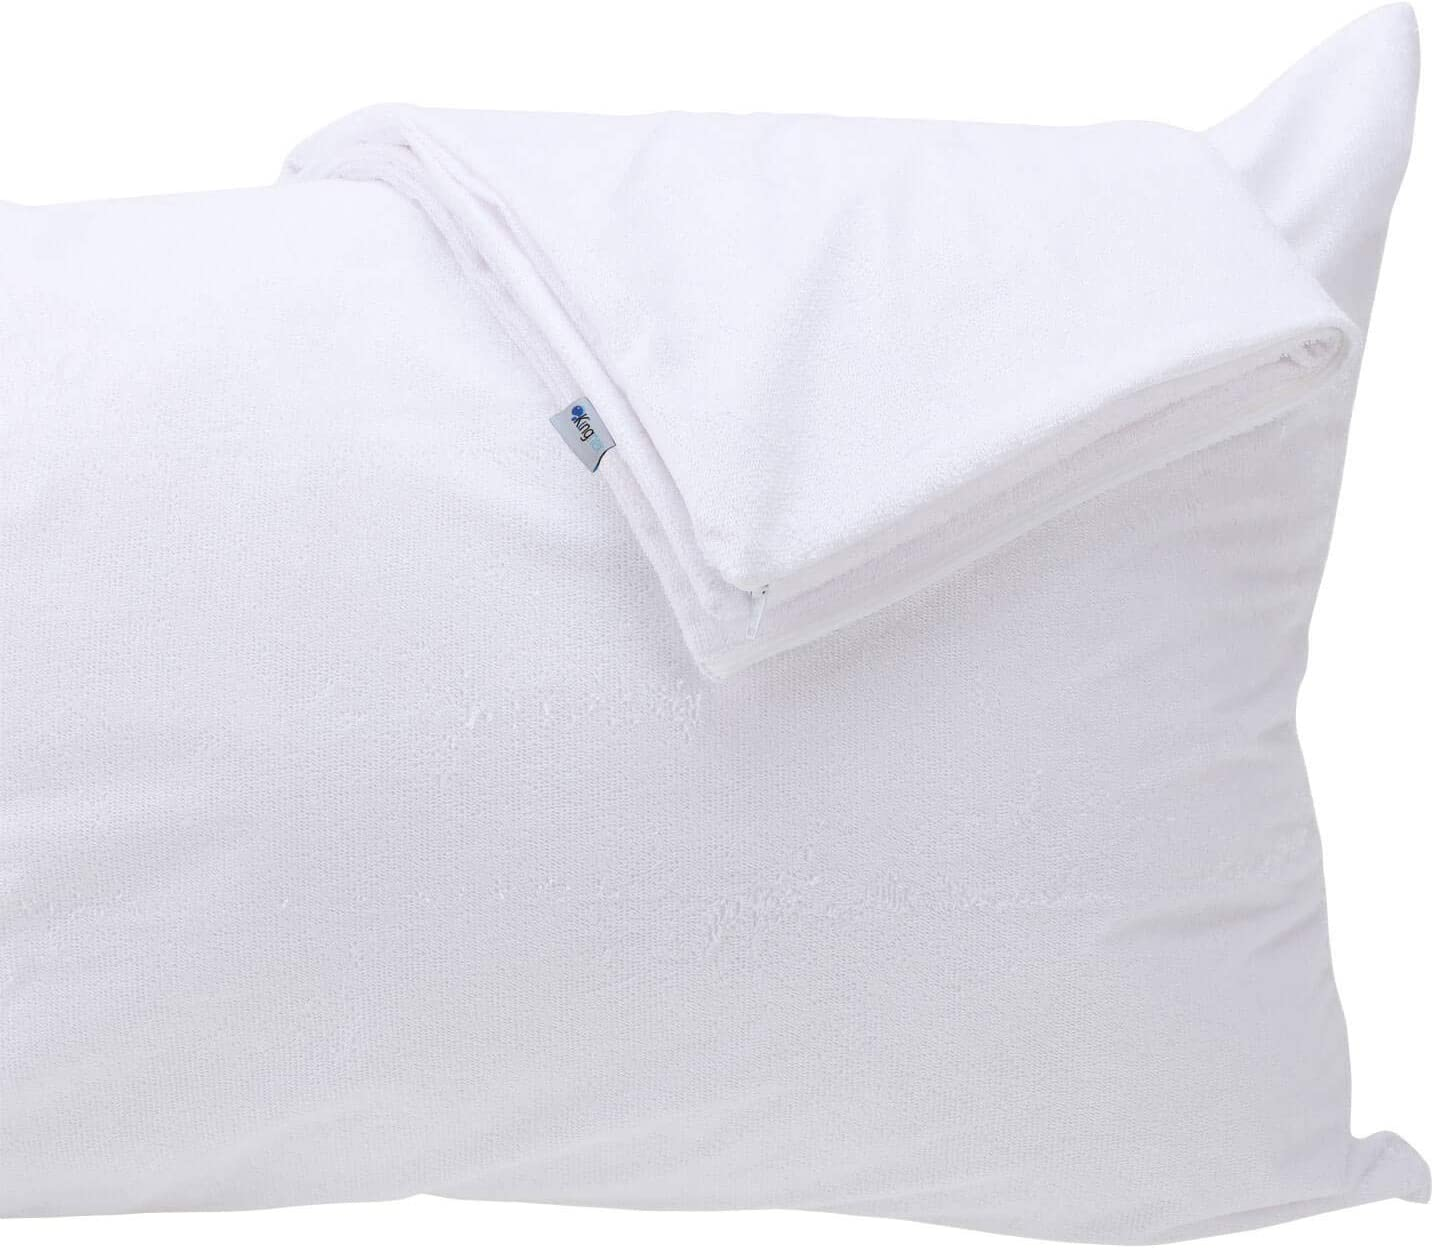 Kingnex Feather Proof Pillow Protectors Queen Size with Zipper Set of 2 - 100% Waterproof - Down Proof - Bamboo Terry Surface